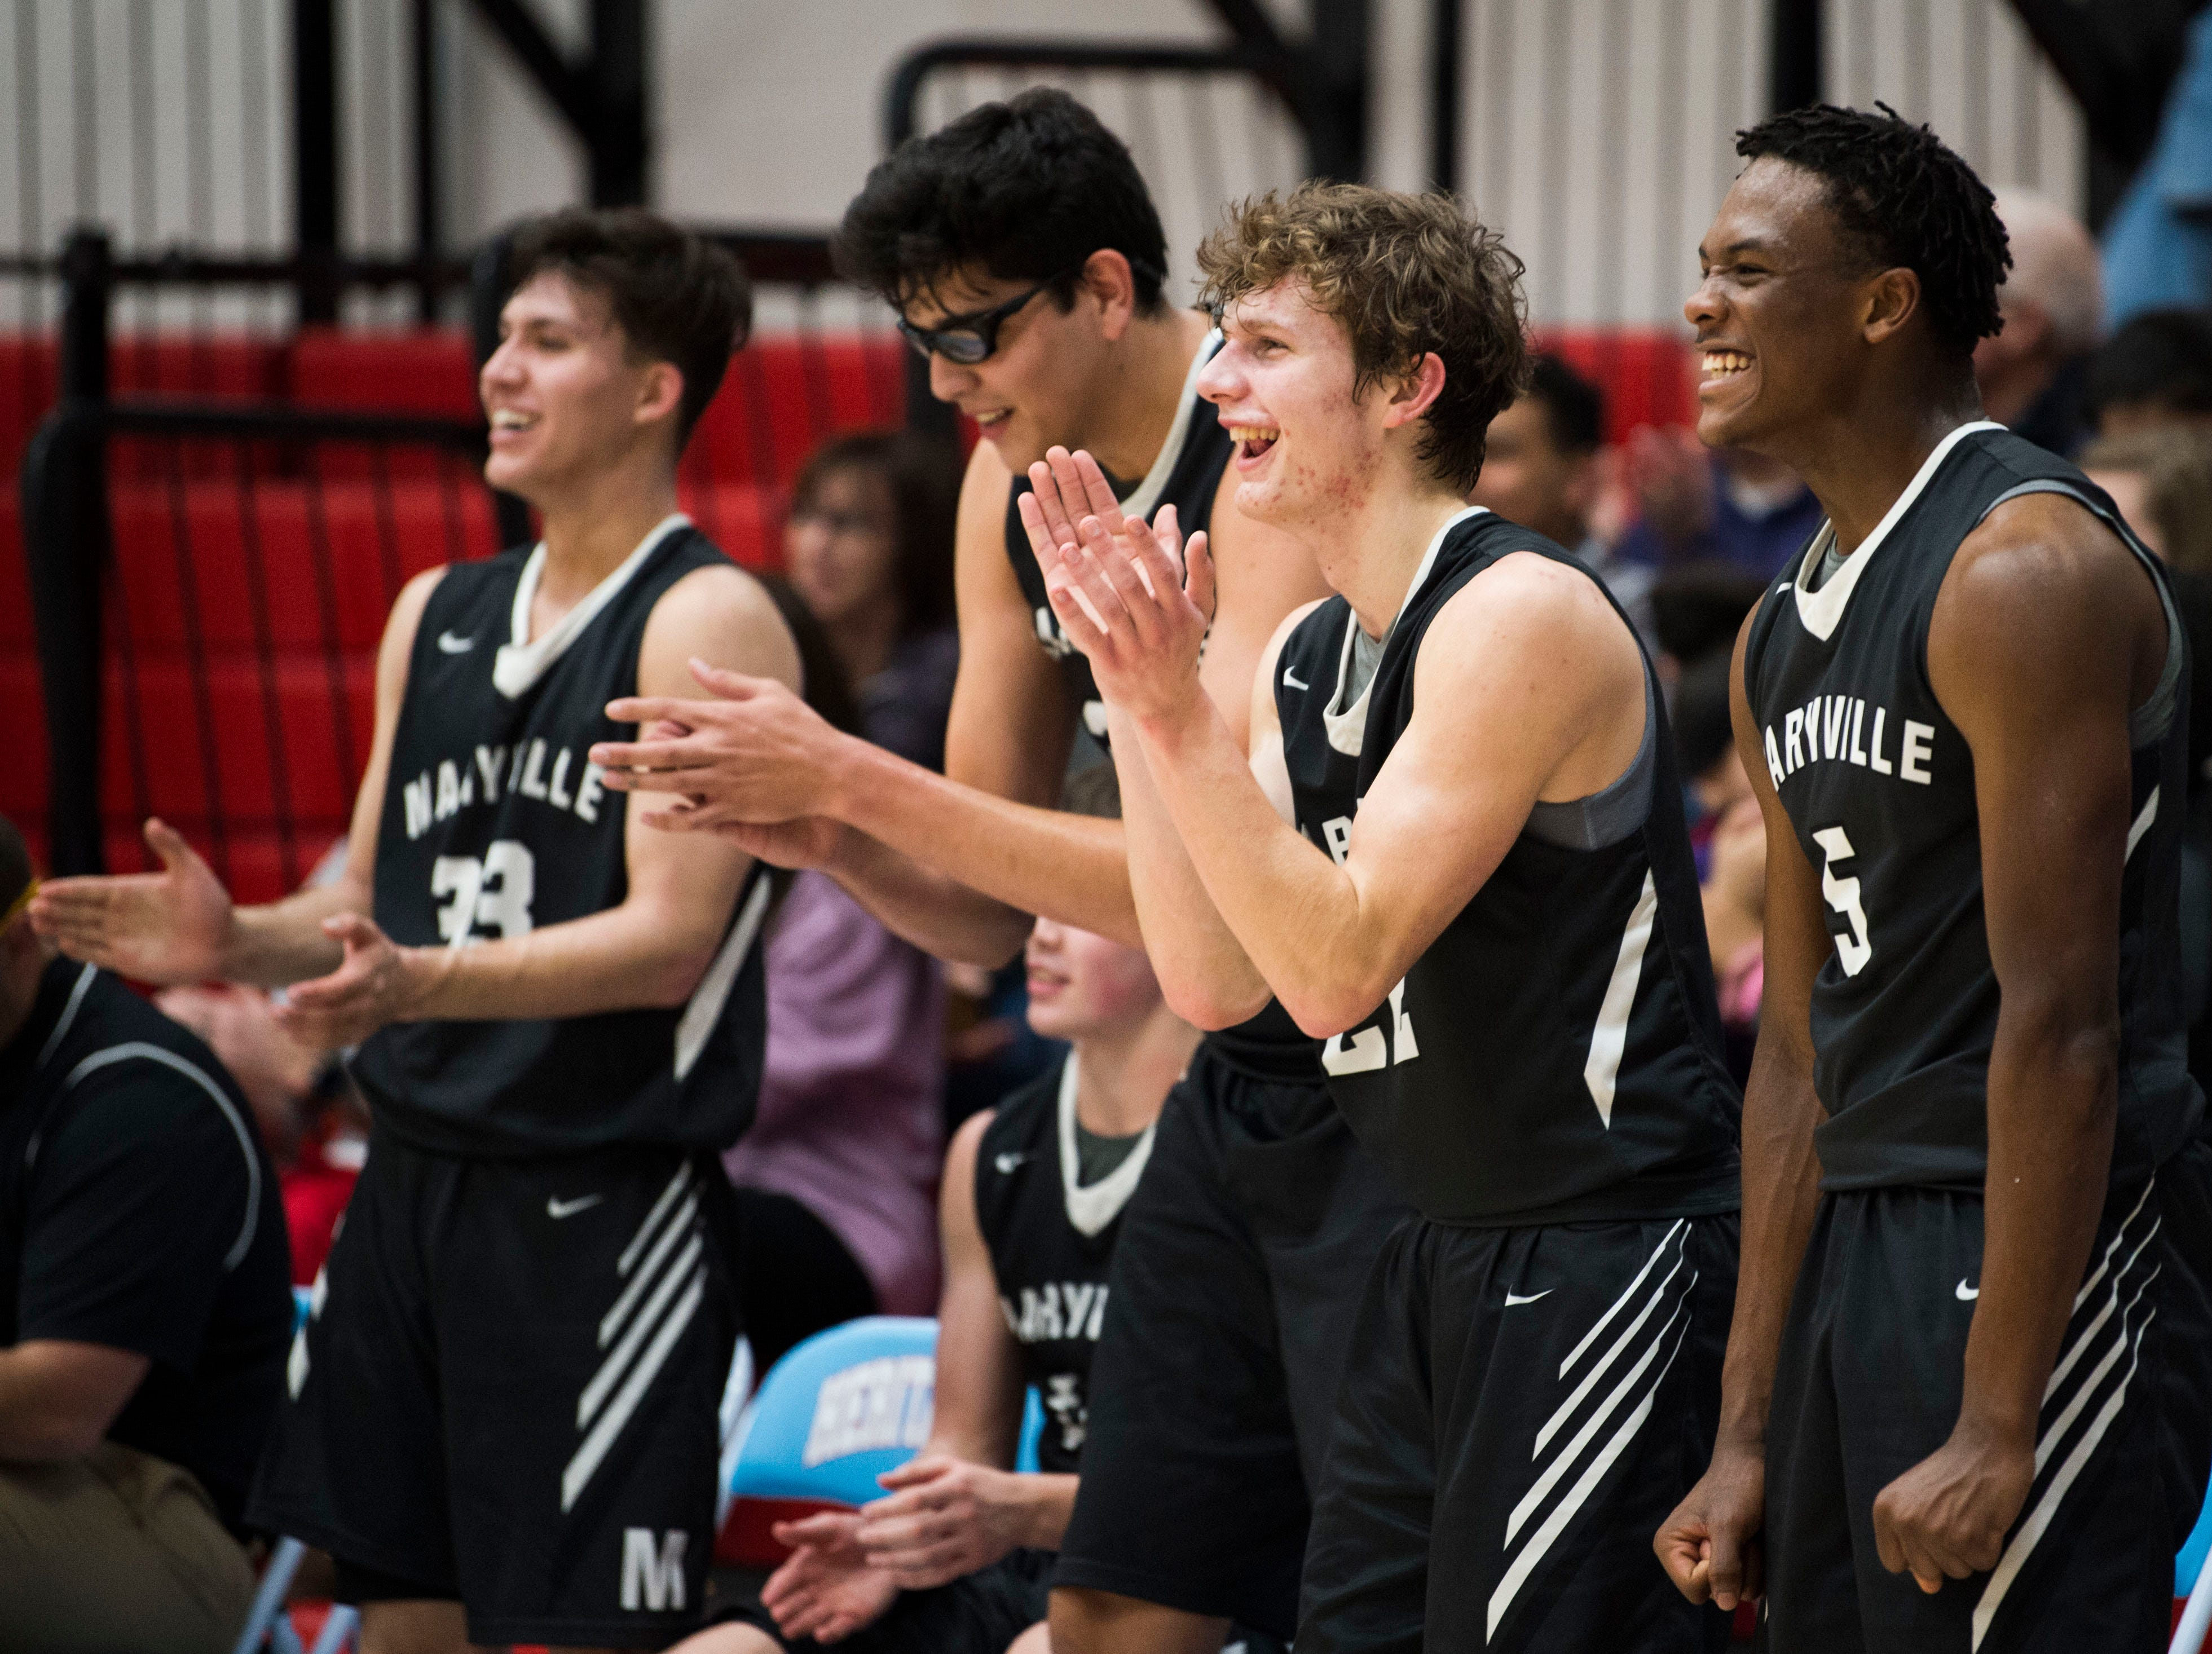 Maryville players celebrate a basket from the bench during a high school basketball game between Maryville and Heritage at Heritage Friday, Jan. 4, 2019. Both Maryville boys and girls teams beat Heritage.